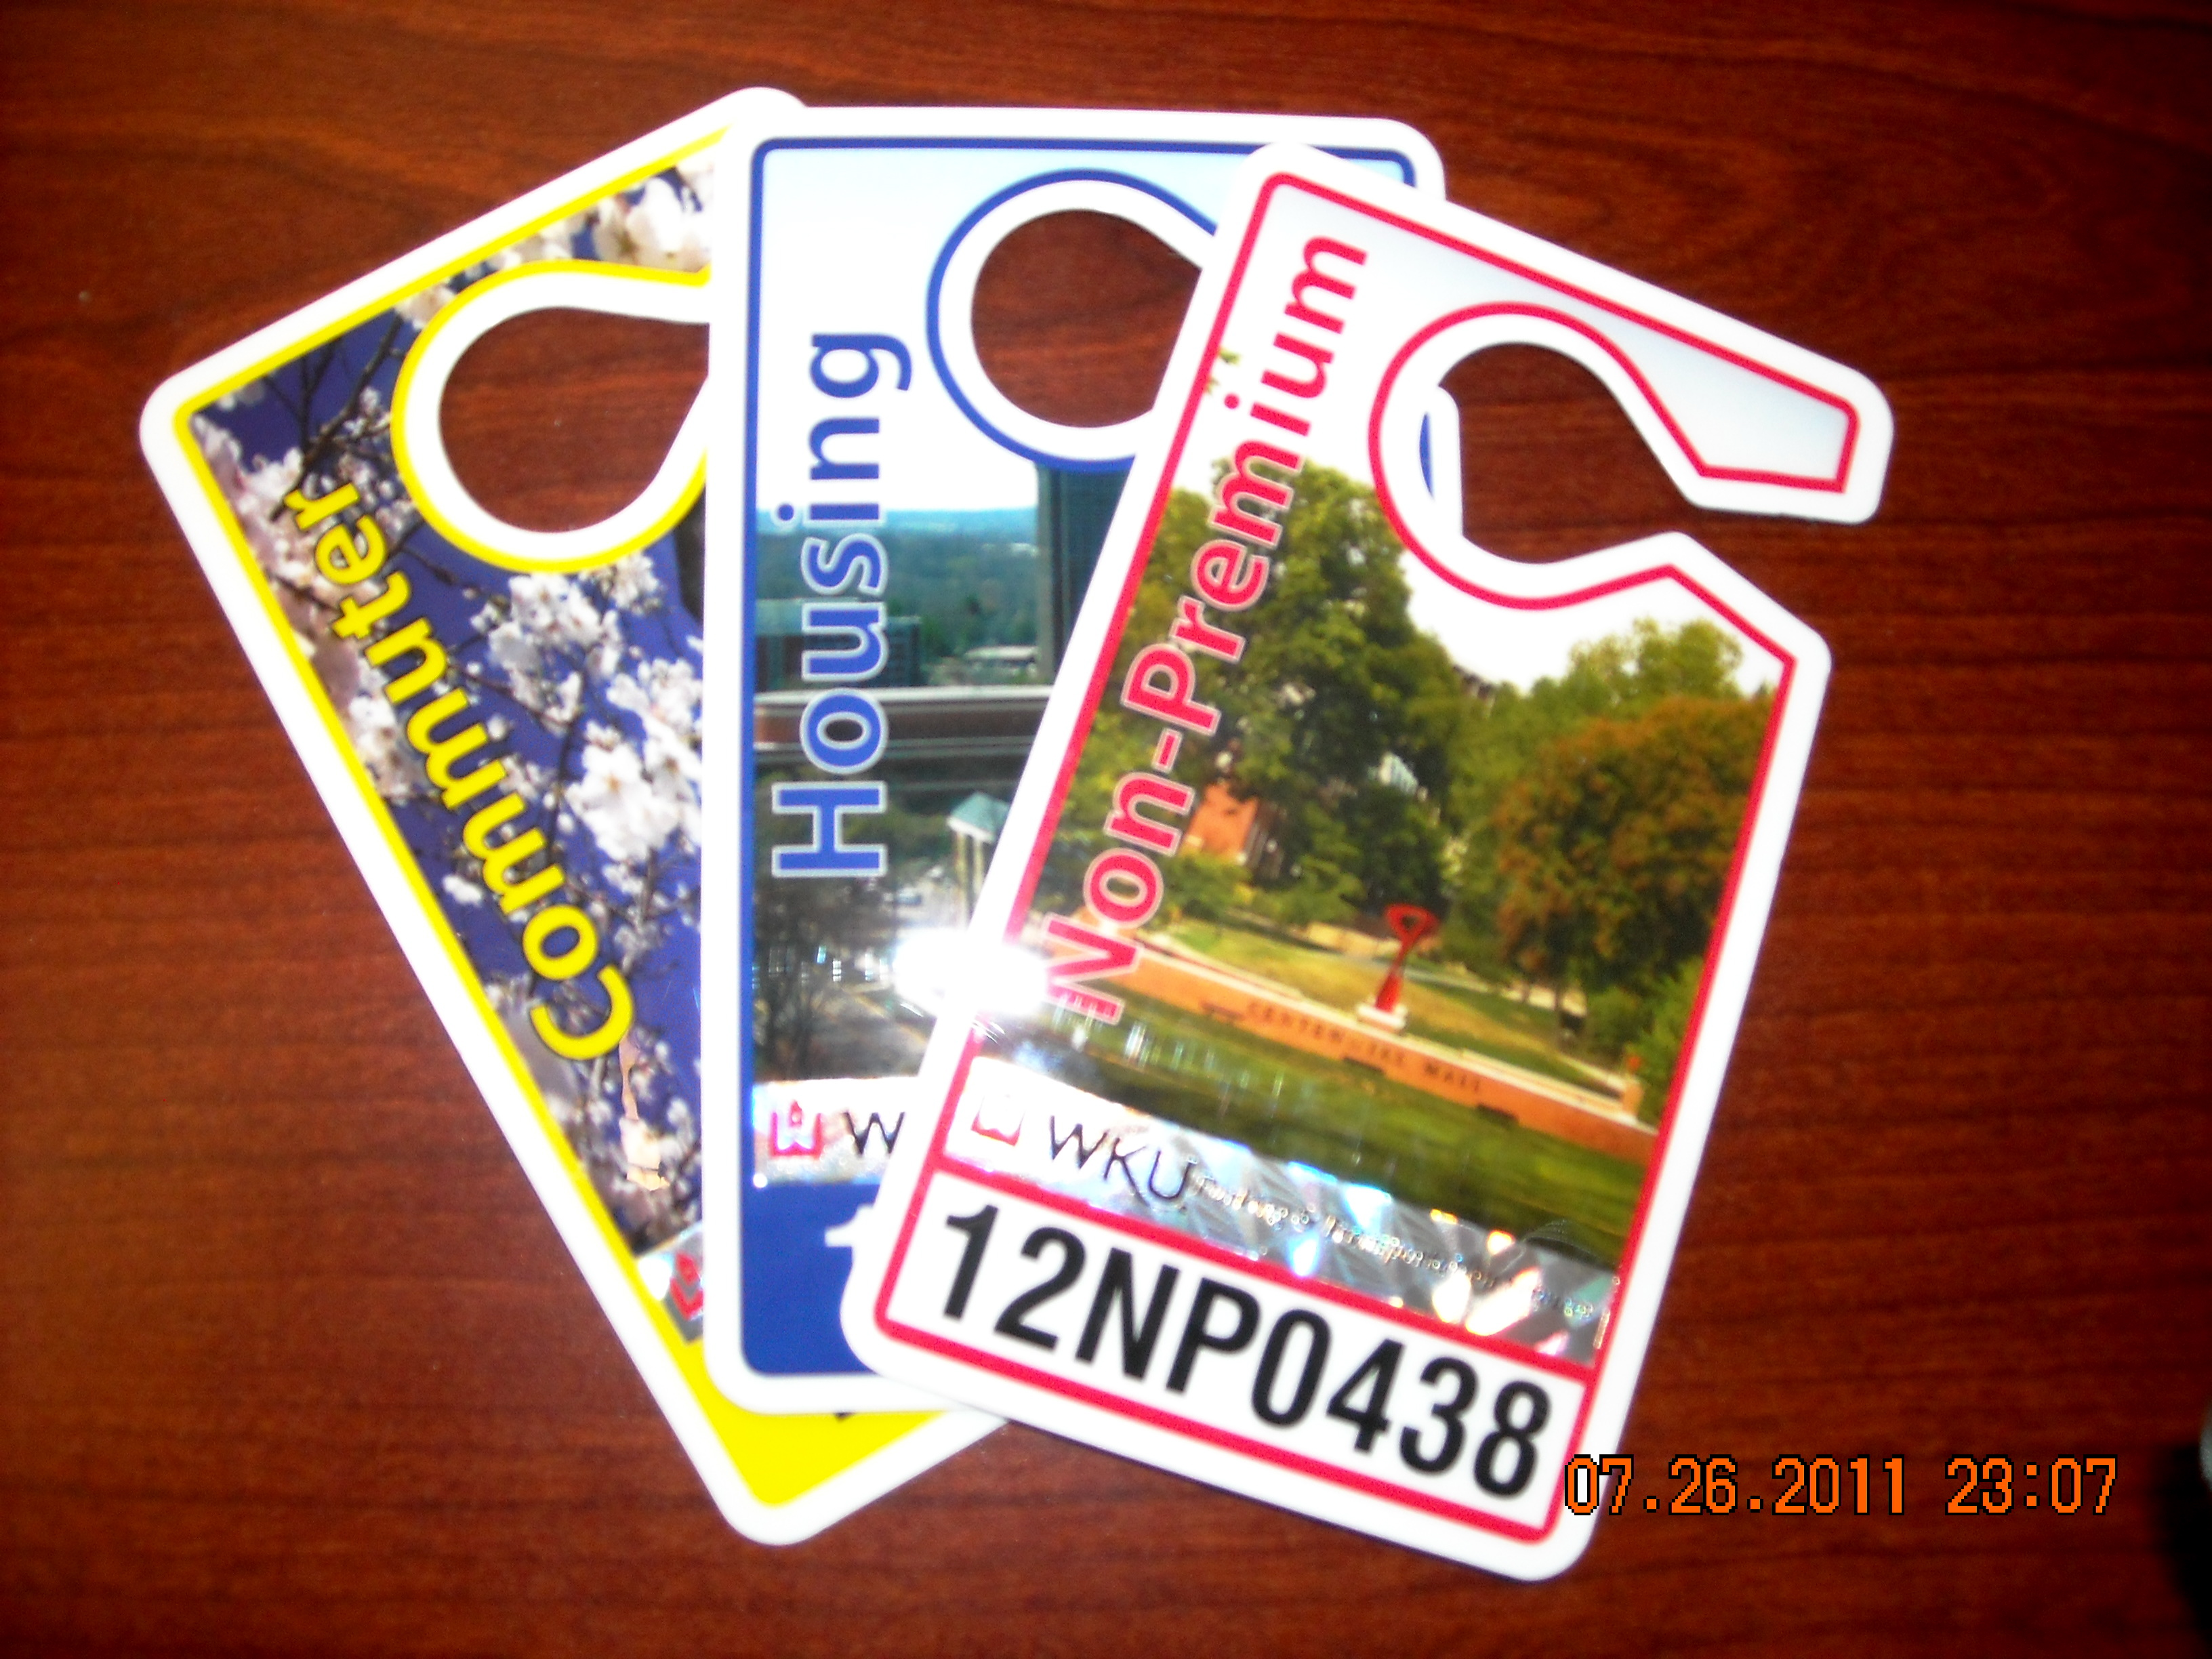 Sampe of 3 parking permits